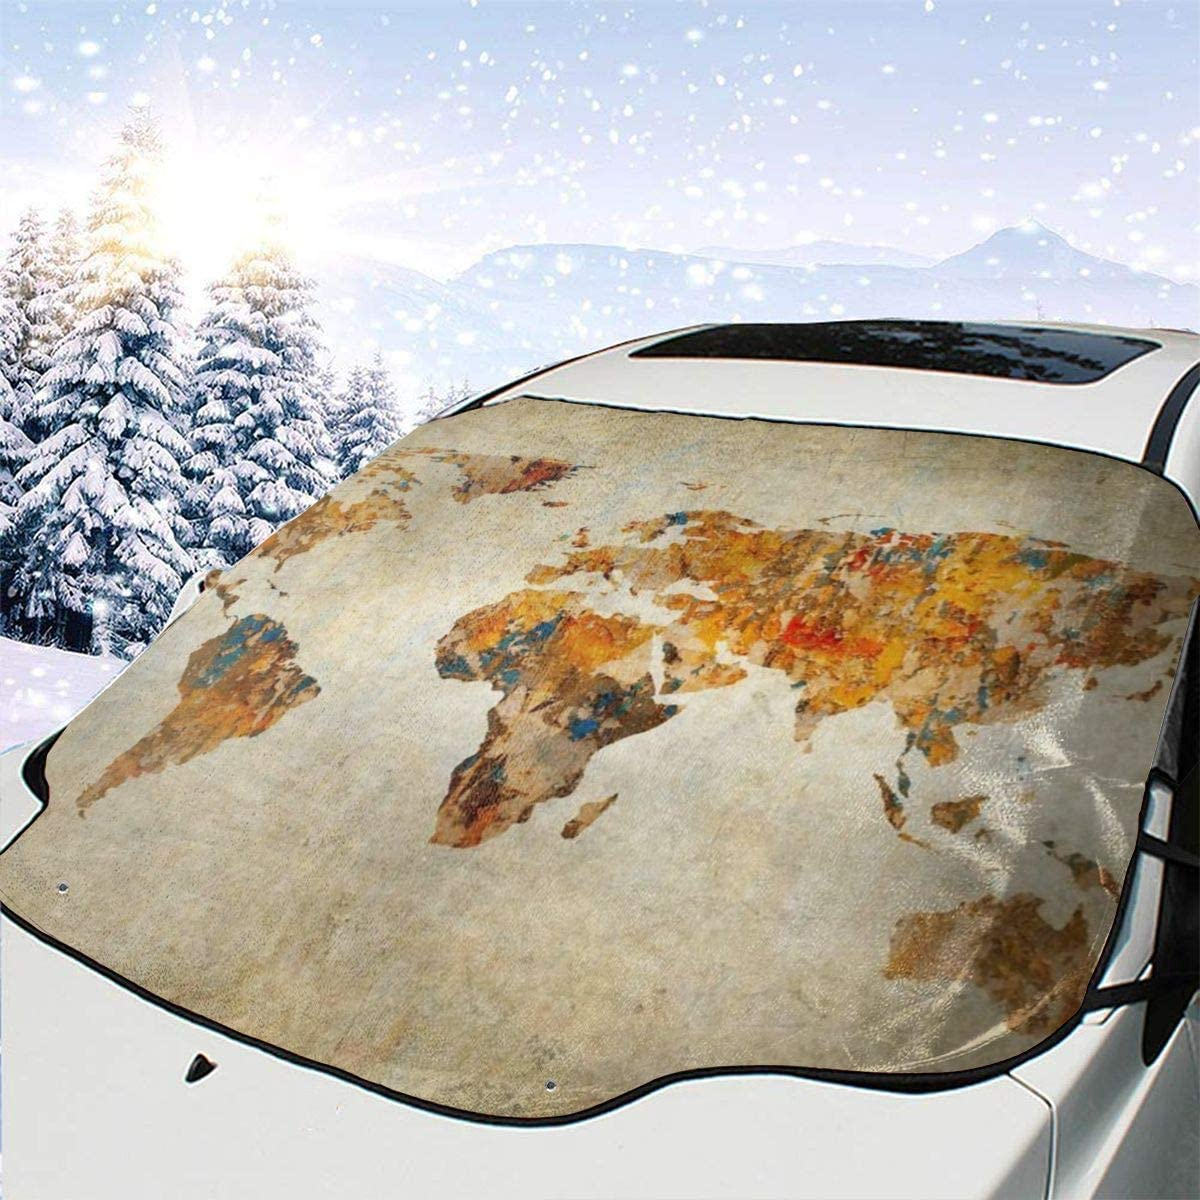 THONFIRE Car Front Window Windshield Ice Sunshade Antique Earth Map Cover Snow Proof Blocks UV Rays Keeps Your Vehicle Cool Visor Protector Automotive Spring Heatshield